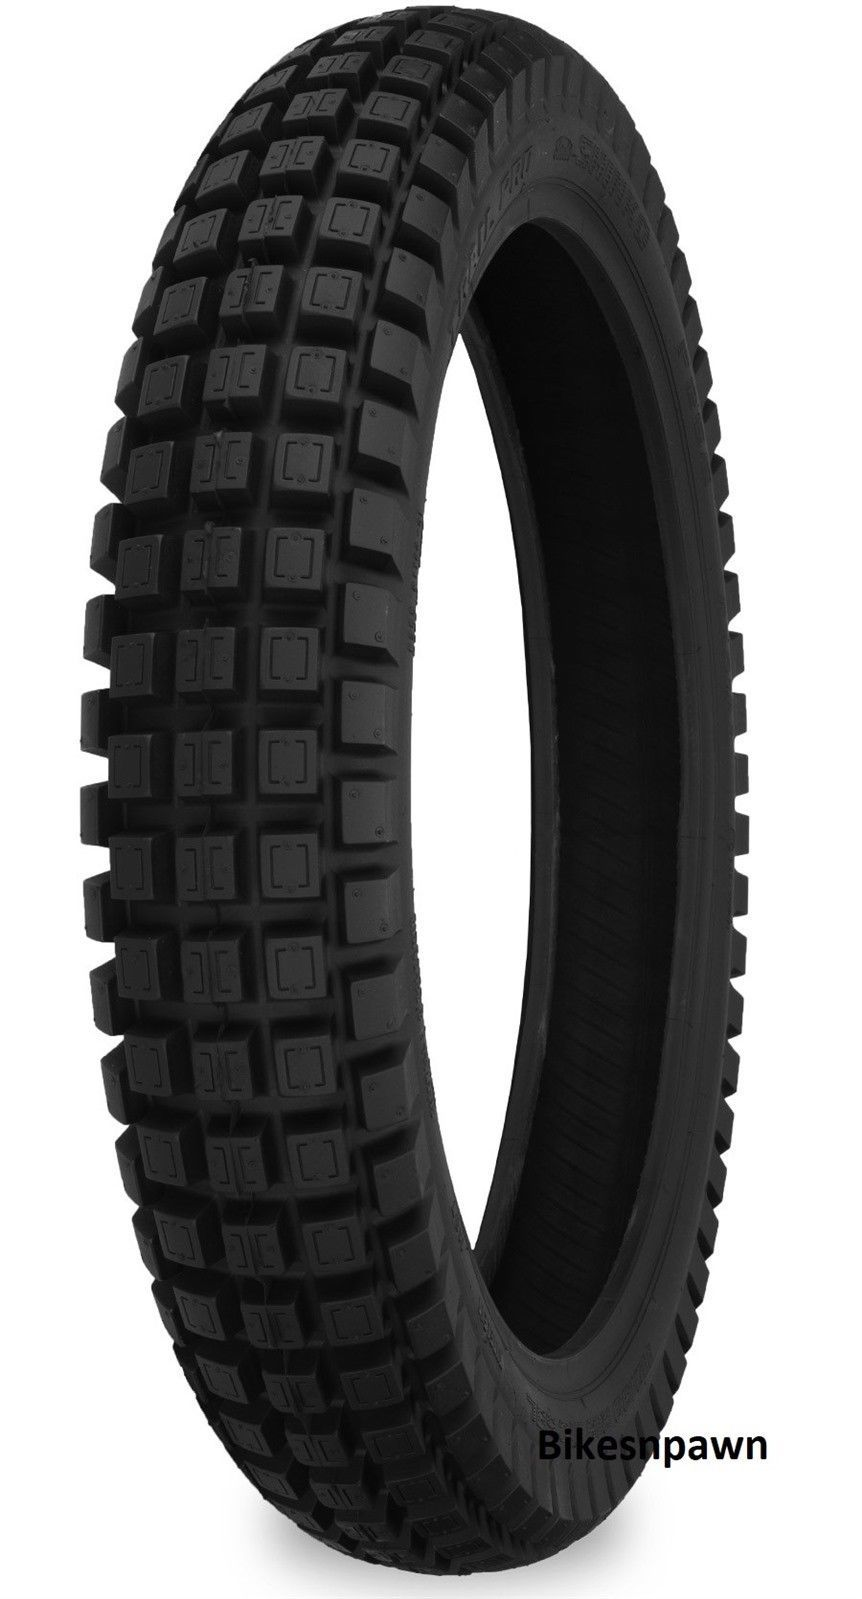 Shinko Trail Pro 255 120/80R-19 Rear Trials Soft Radial DOT Motorcycle Tire M 65